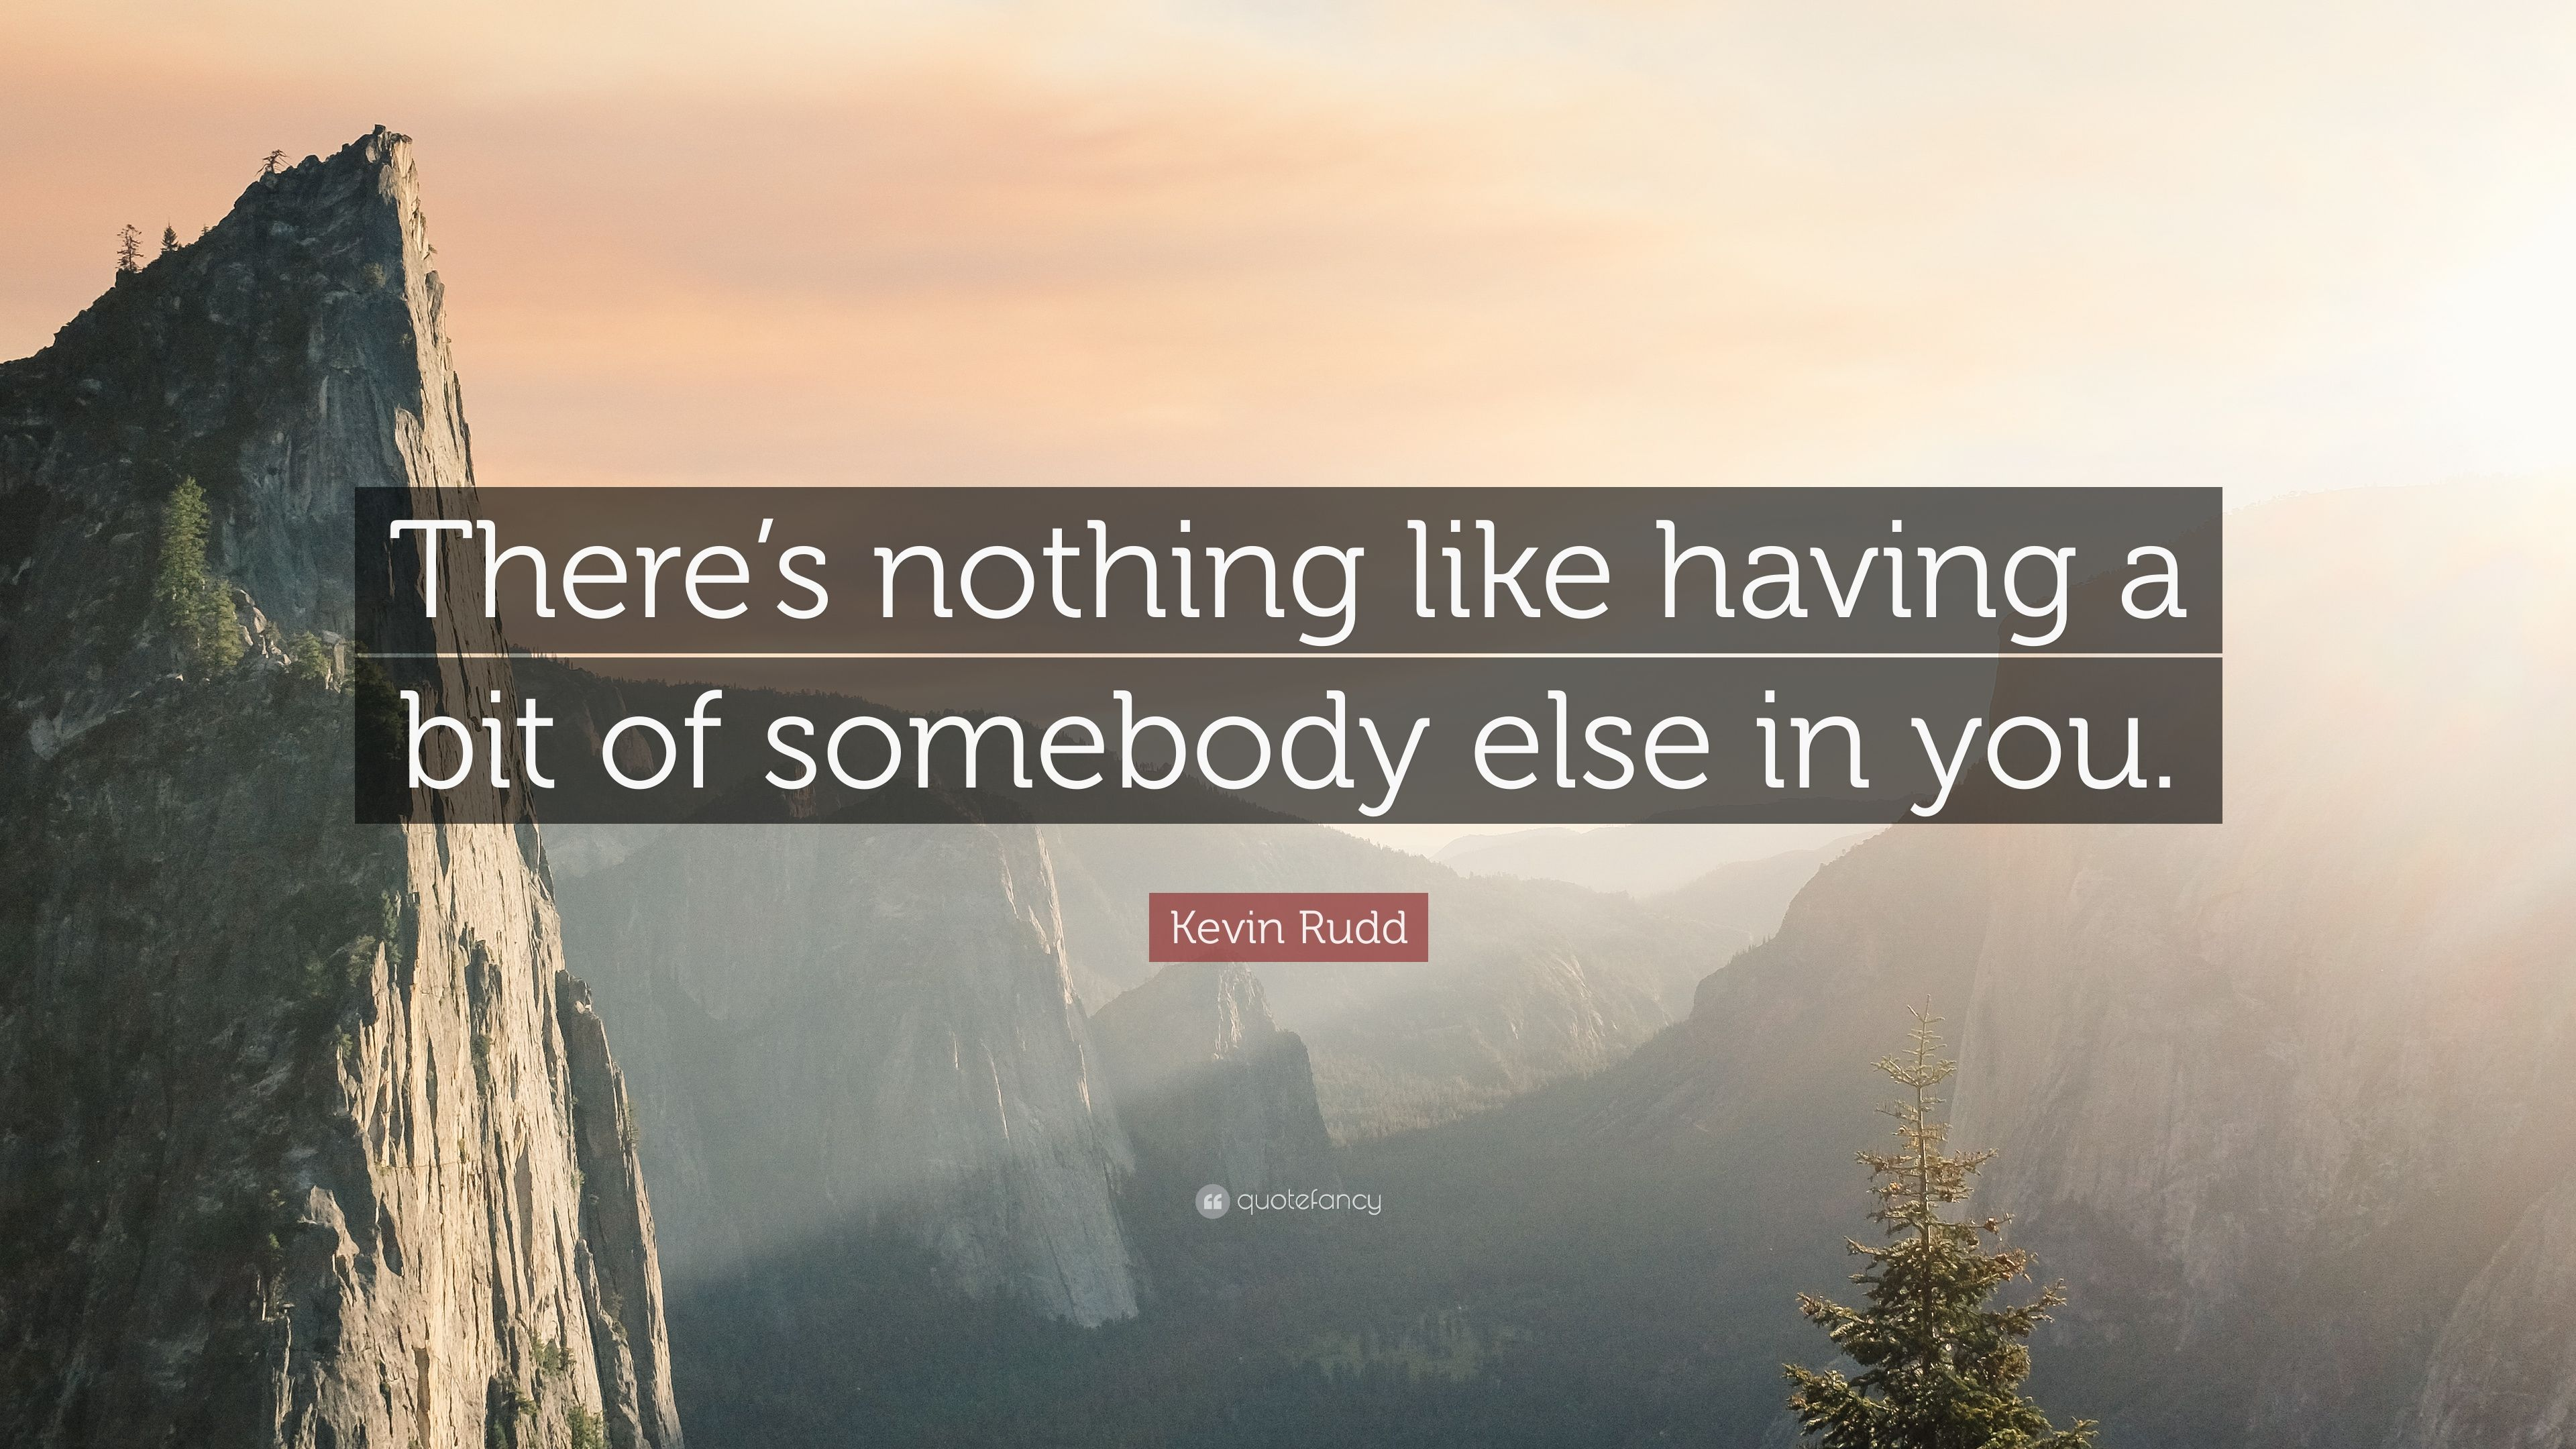 Kevin Rudd Quote There S Nothing Like Having A Bit Of Somebody Else In You 7 Wallpapers Quotefancy